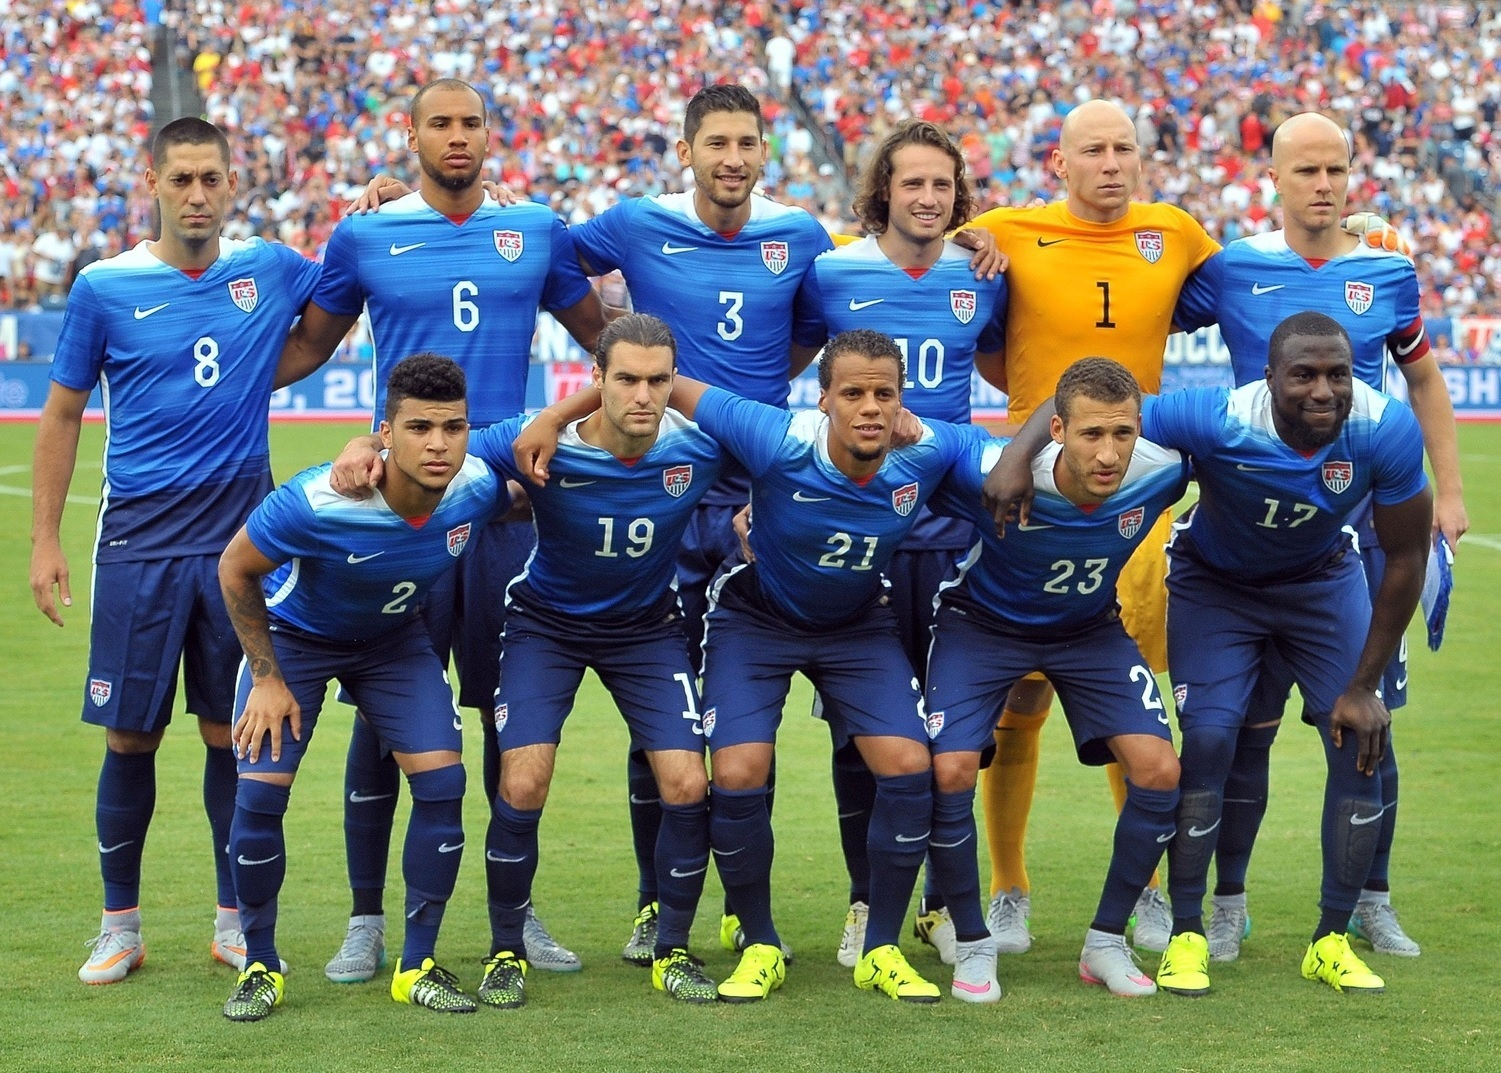 USA-2015-NIKE-away-kit-blue-navy-navy-line-up.jpg